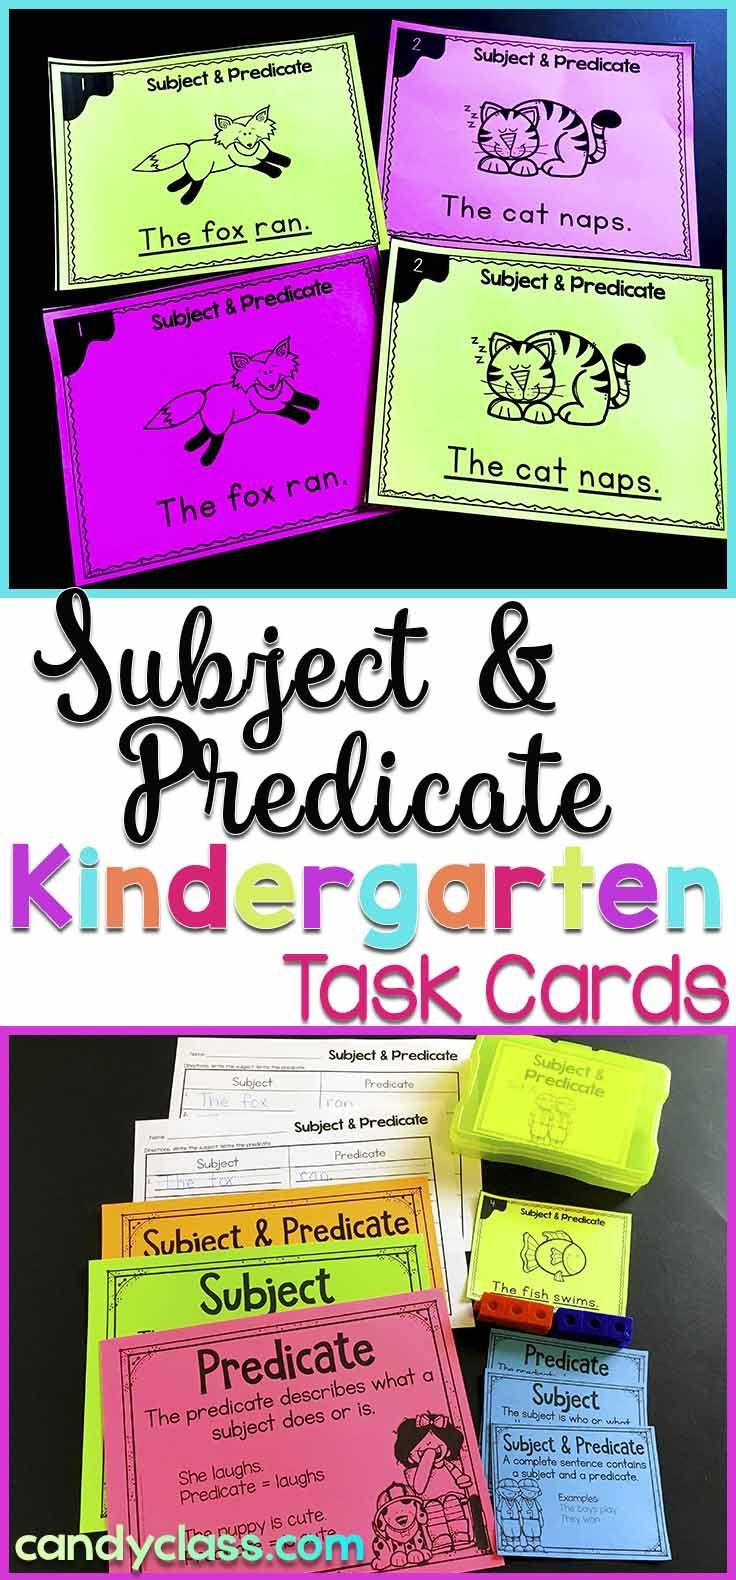 Looking for a way to teach subjects and predicates in kindergarten? These fun activities covering this important grammar topic are geared for kinders, but can also be used in a first grade classroom for intervention or extra practice. Anchor charts are included for introducing the lesson and fun games. Includes connecting Common Core standards.